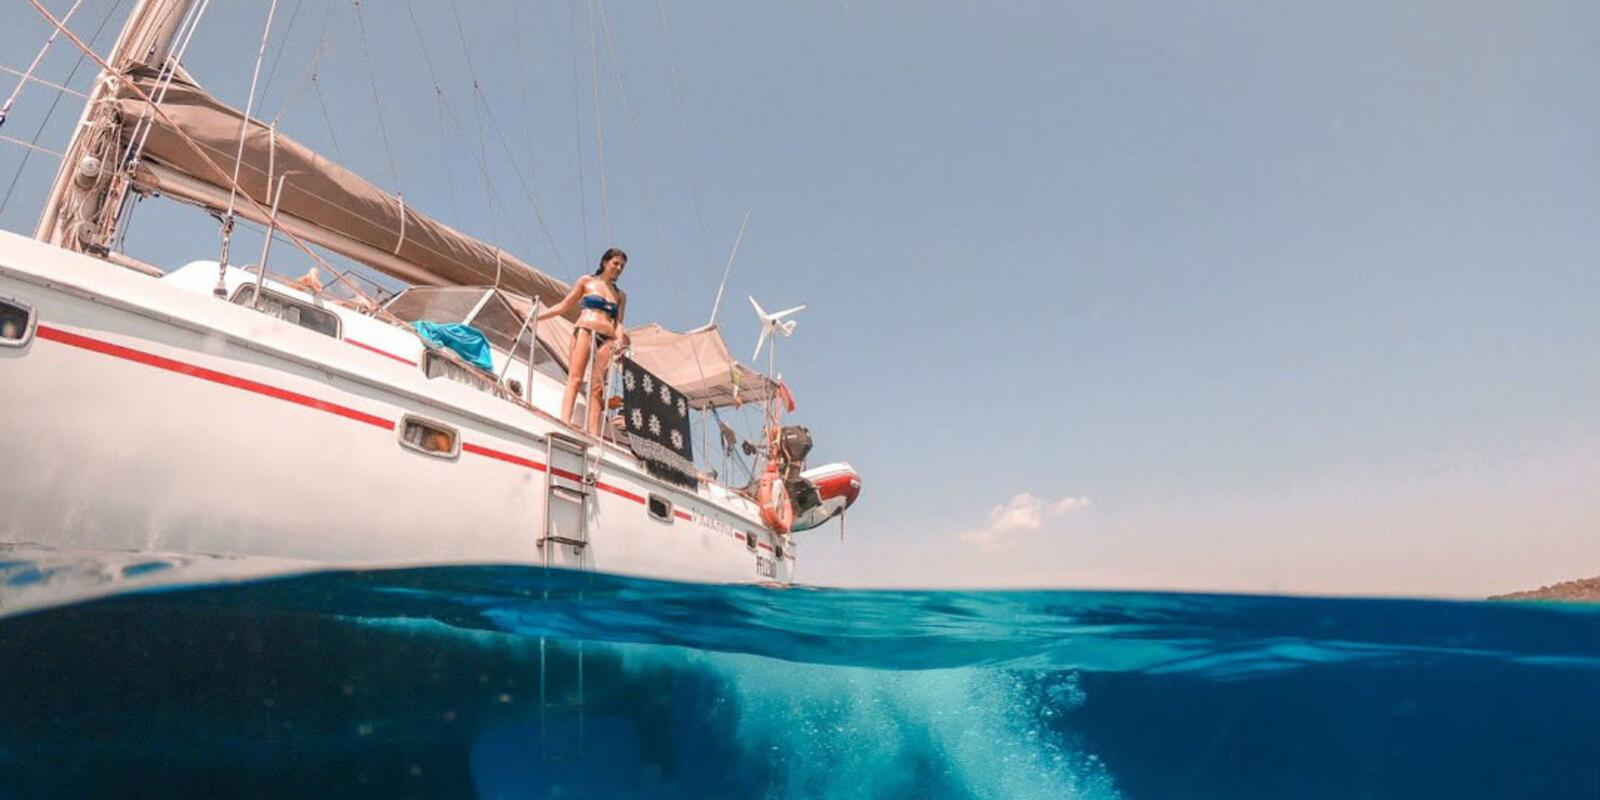 Cruise between Capraia and Corsica with Skipper and Hostess